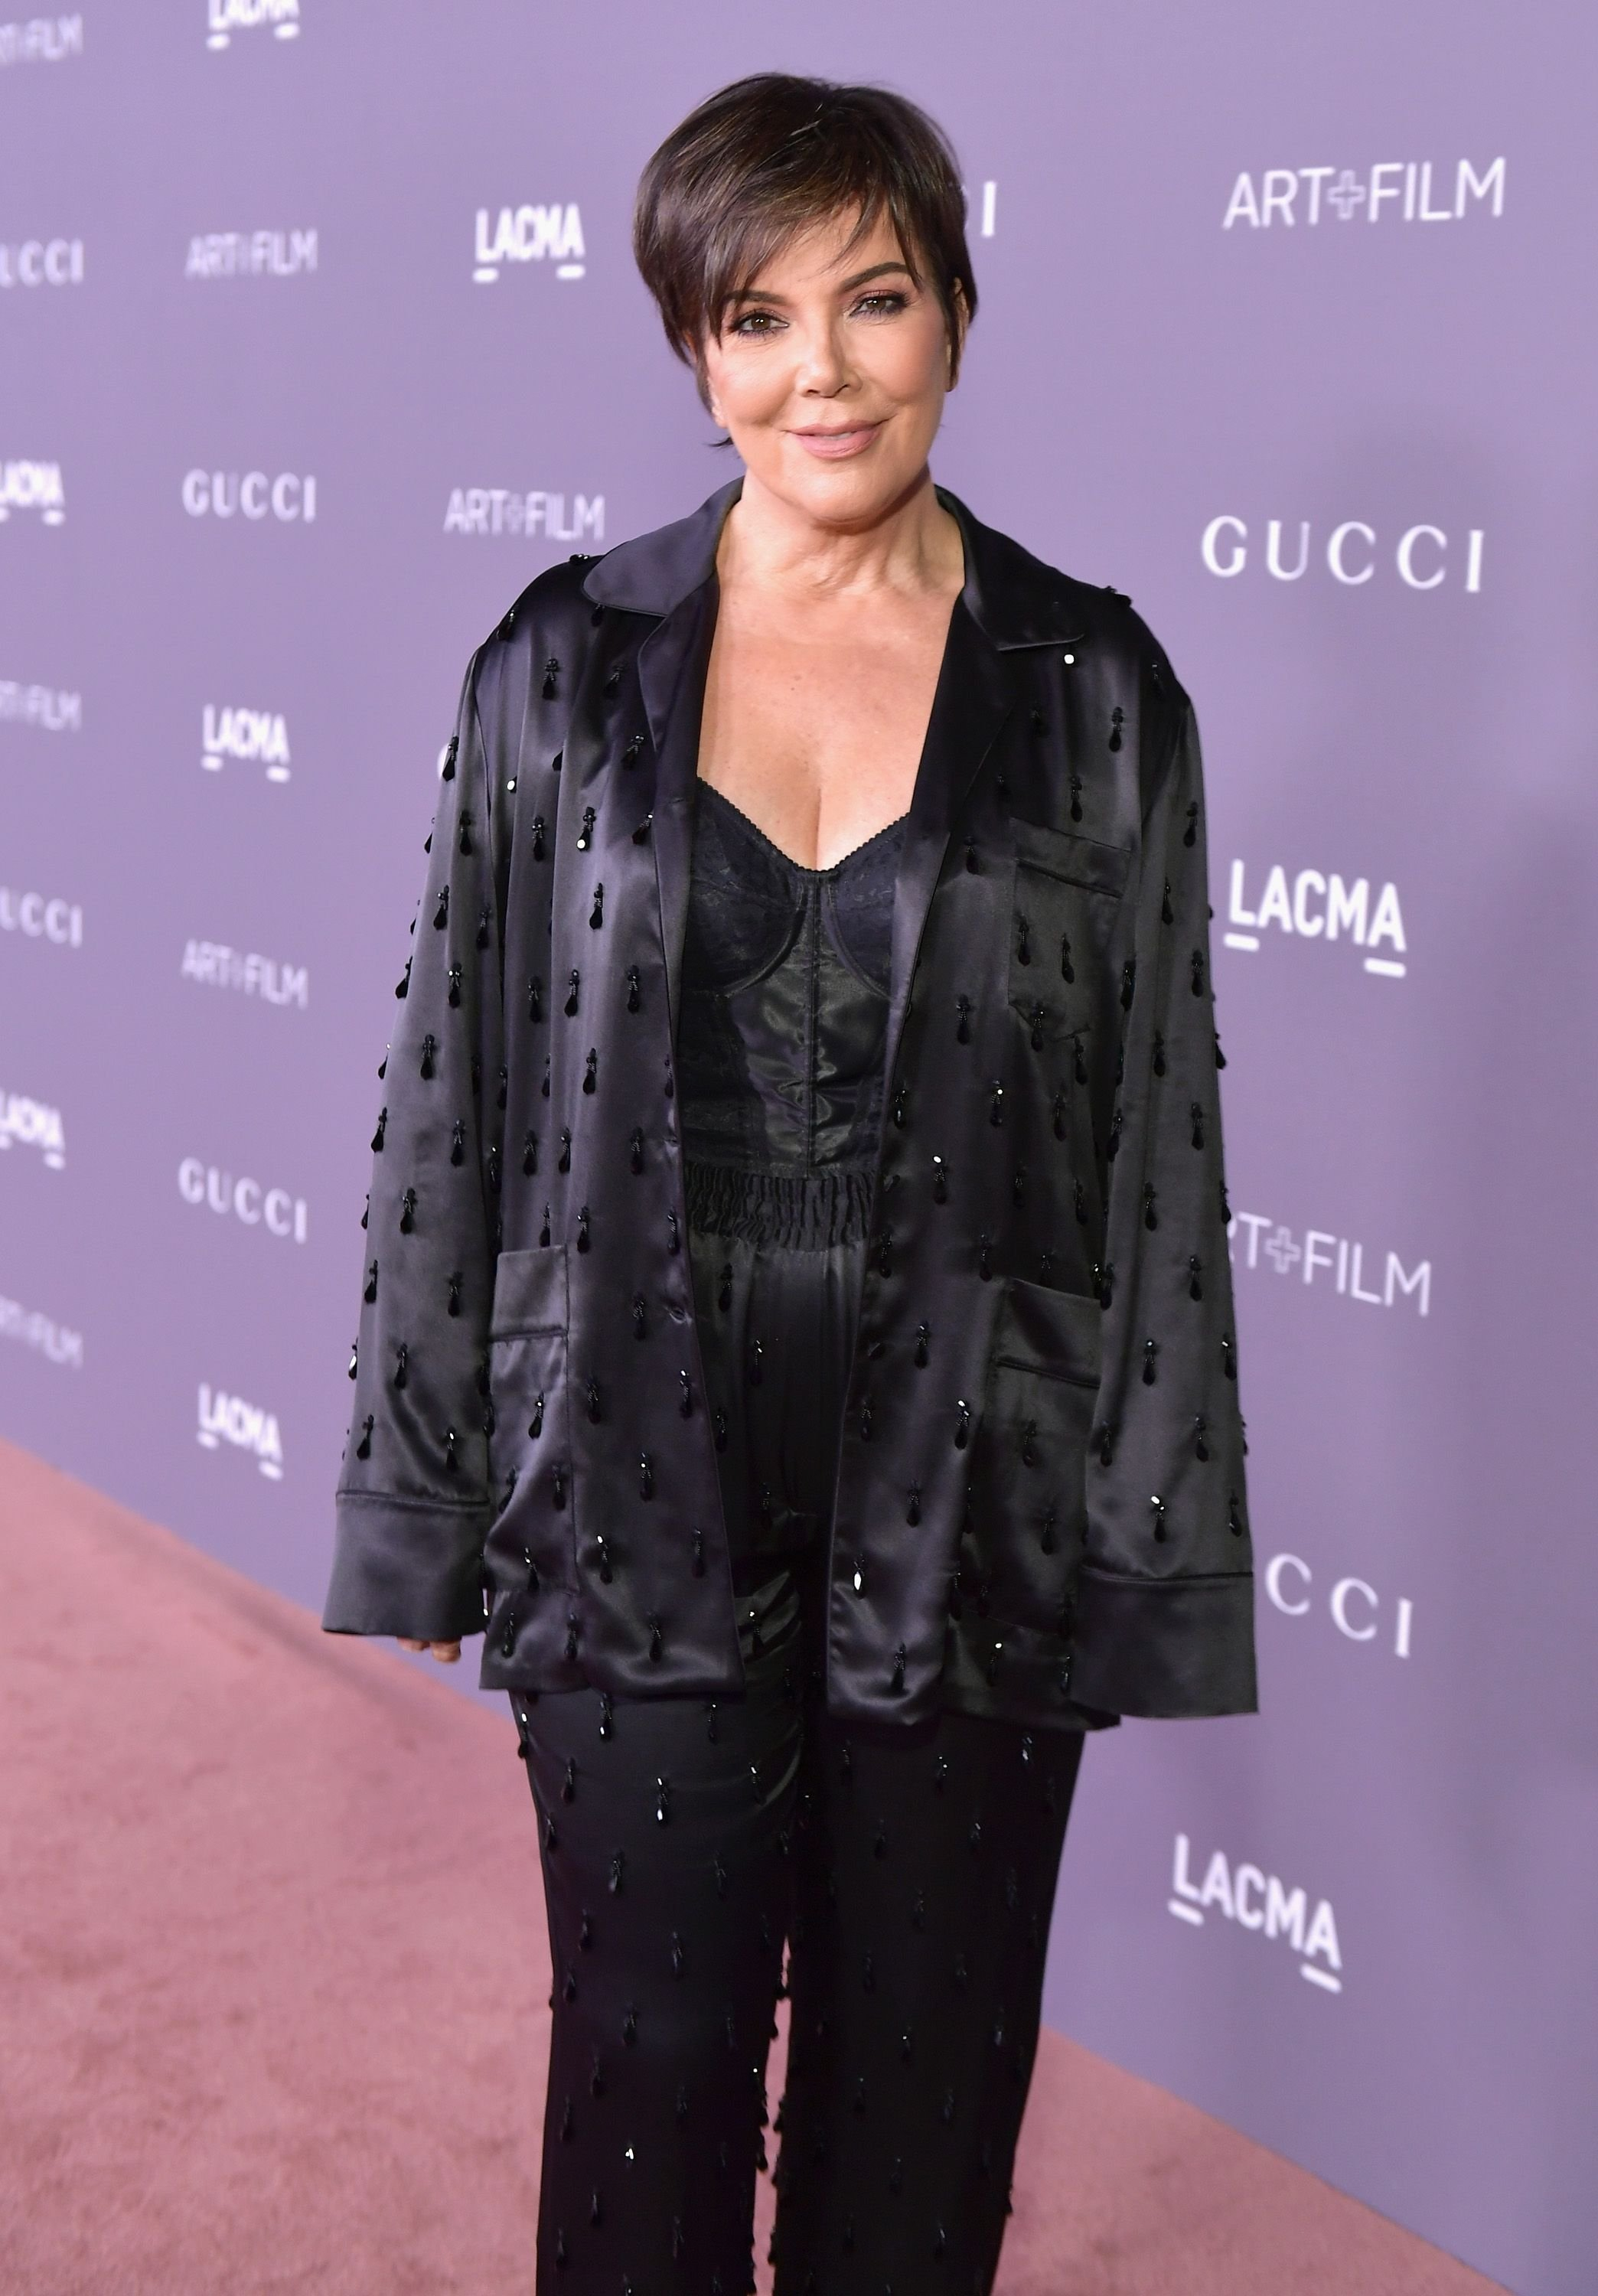 Kris Jenner at the 2017 LACMA Art + Film Gala Honoring Mark Bradford and George Lucas presented by Gucci at LACMA on November 4, 2017 | Photo: Getty Images